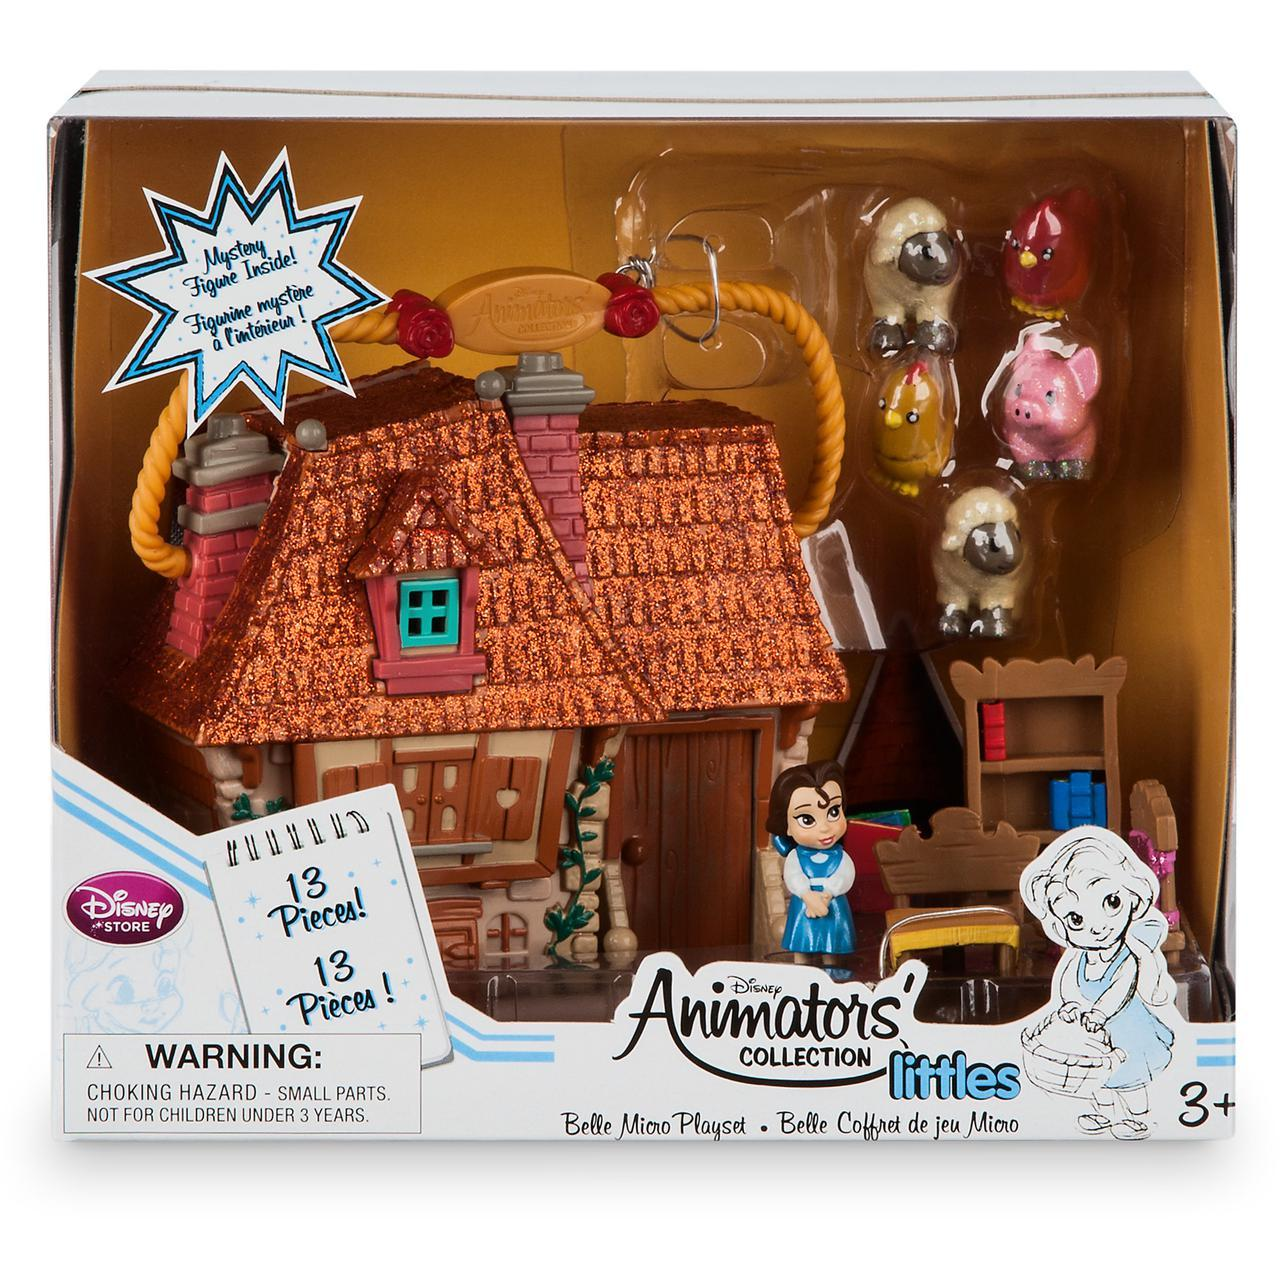 "Disney Animators' Collection Littles Belle Micro Doll Play - 2"". Набор игрушек 13 предметов Белль"